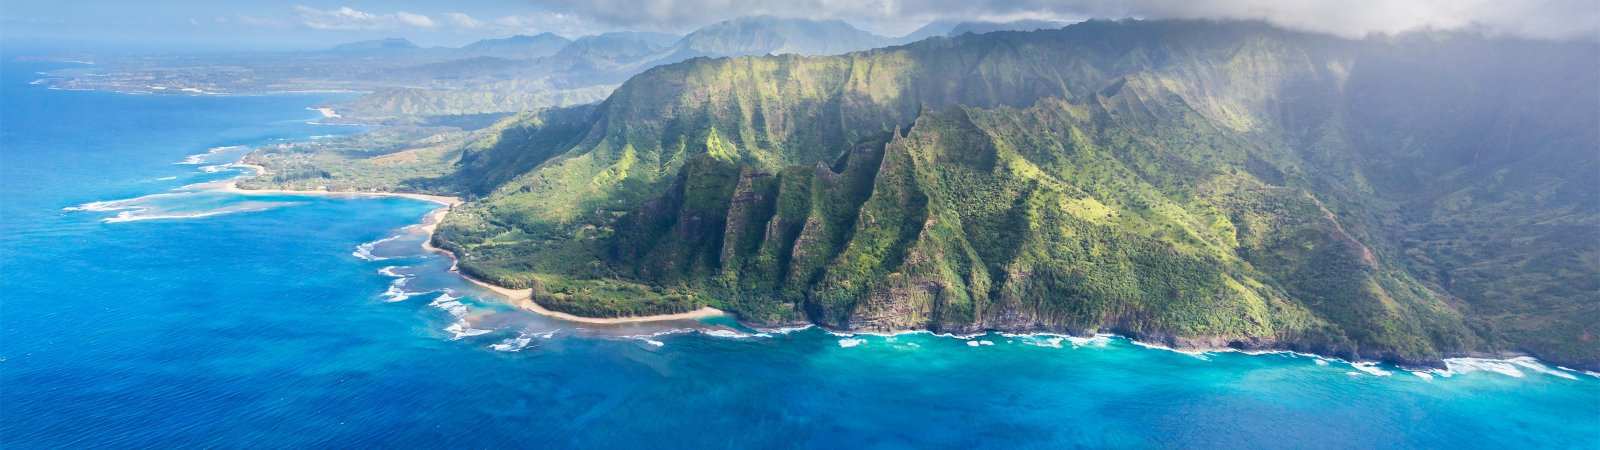 Ultimate Guide to Kauai